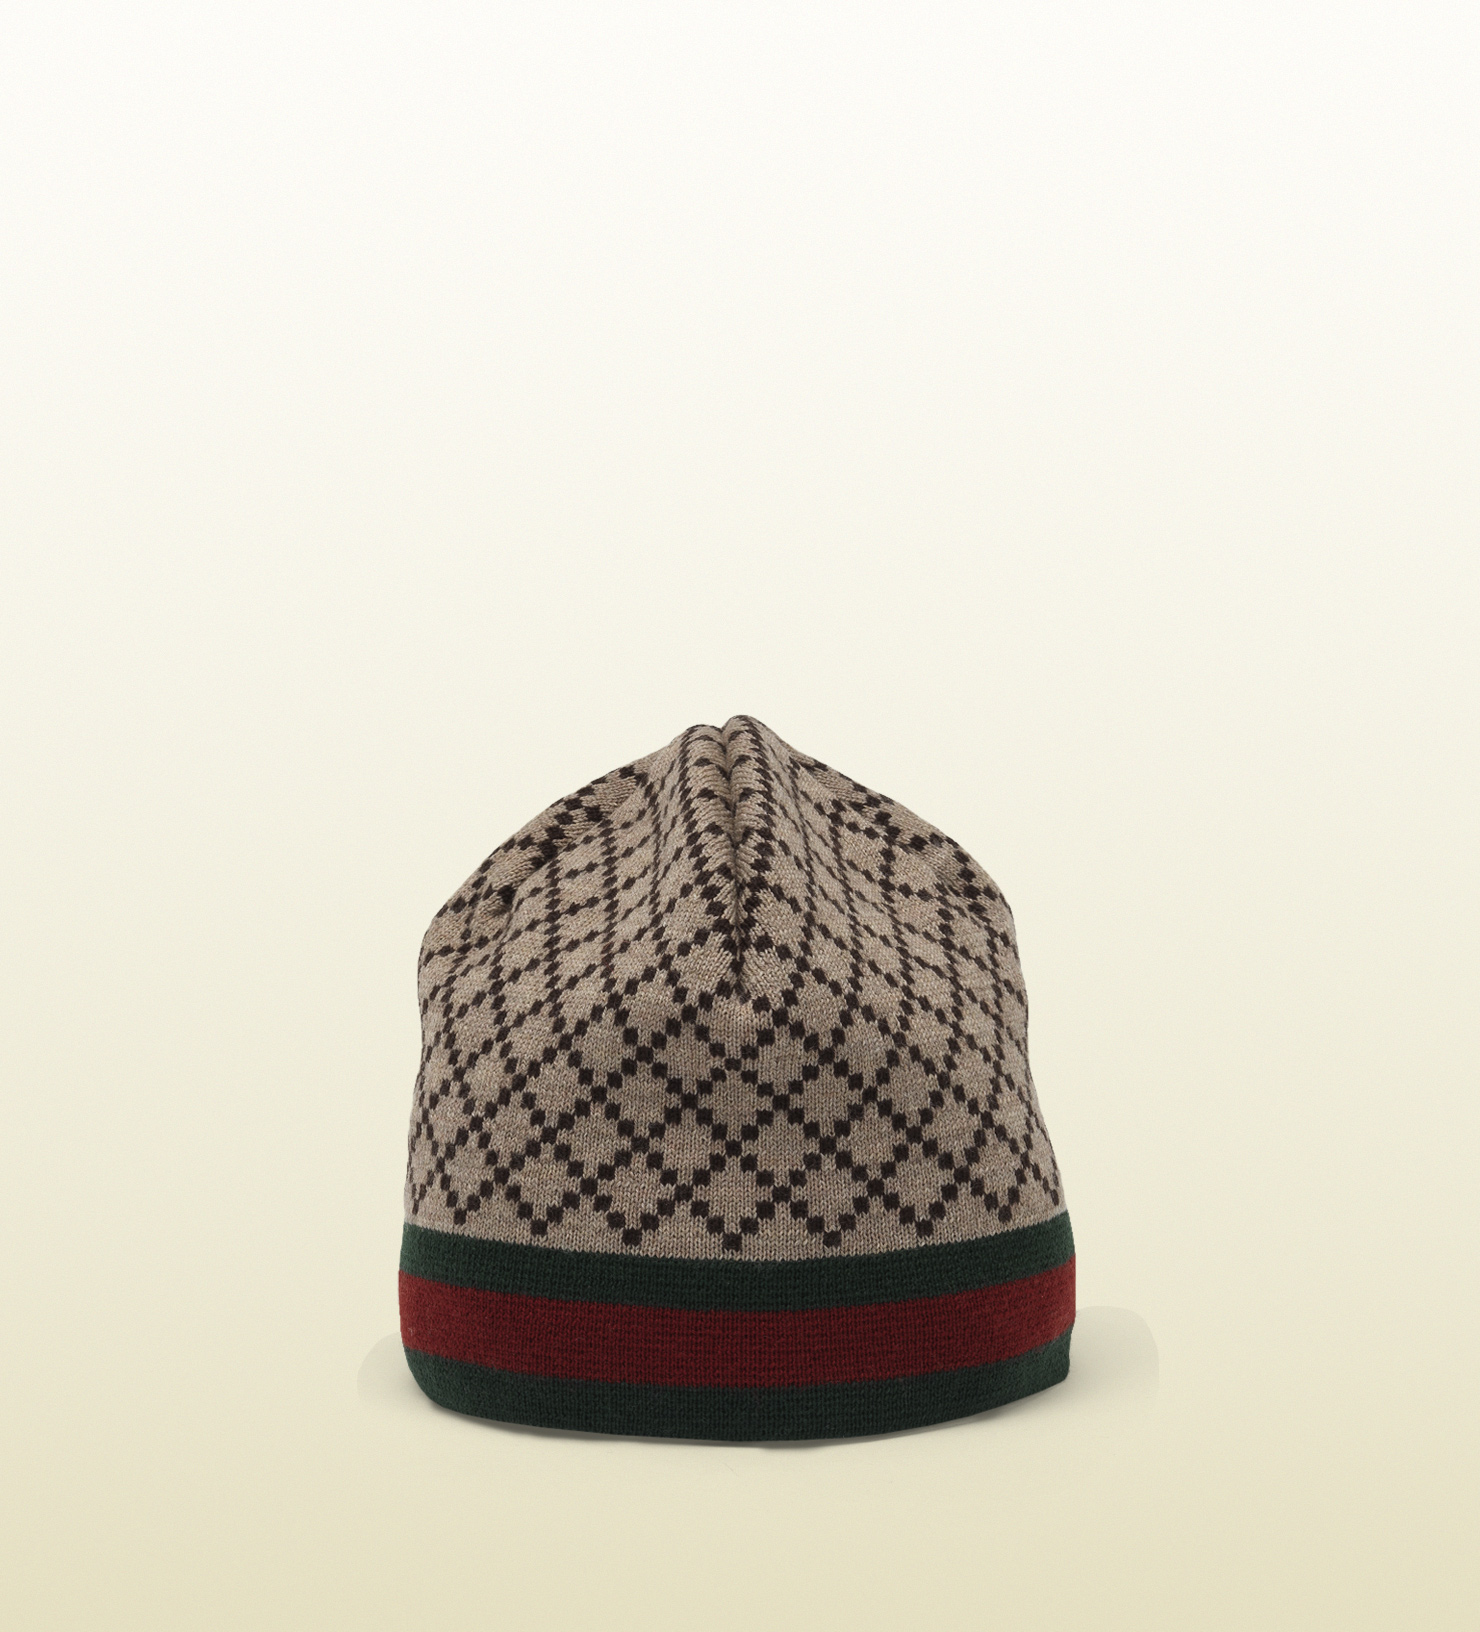 Lyst - Gucci Diamante Pattern Knit Hat With Web Detail in Brown for Men bd02ee797fa9